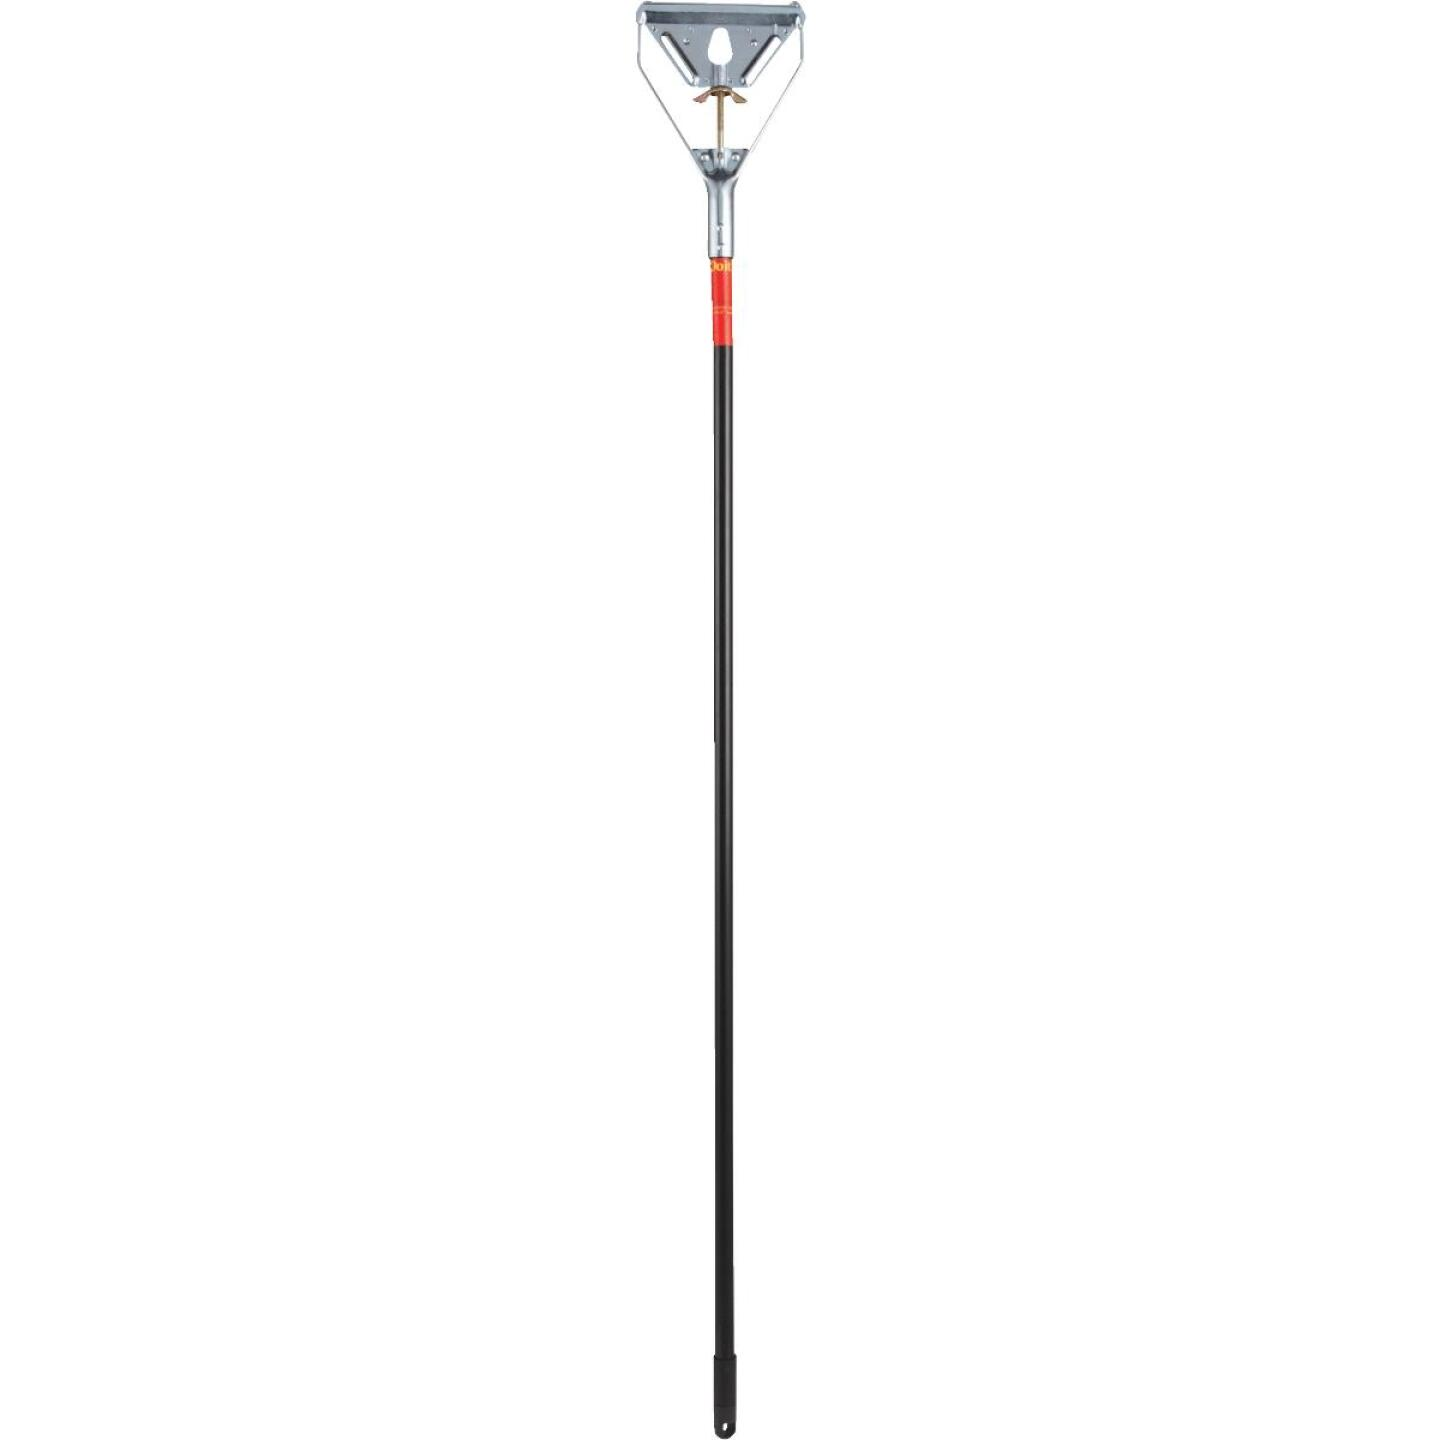 Do it Professional 60 In. Steel Mop Handle Image 7